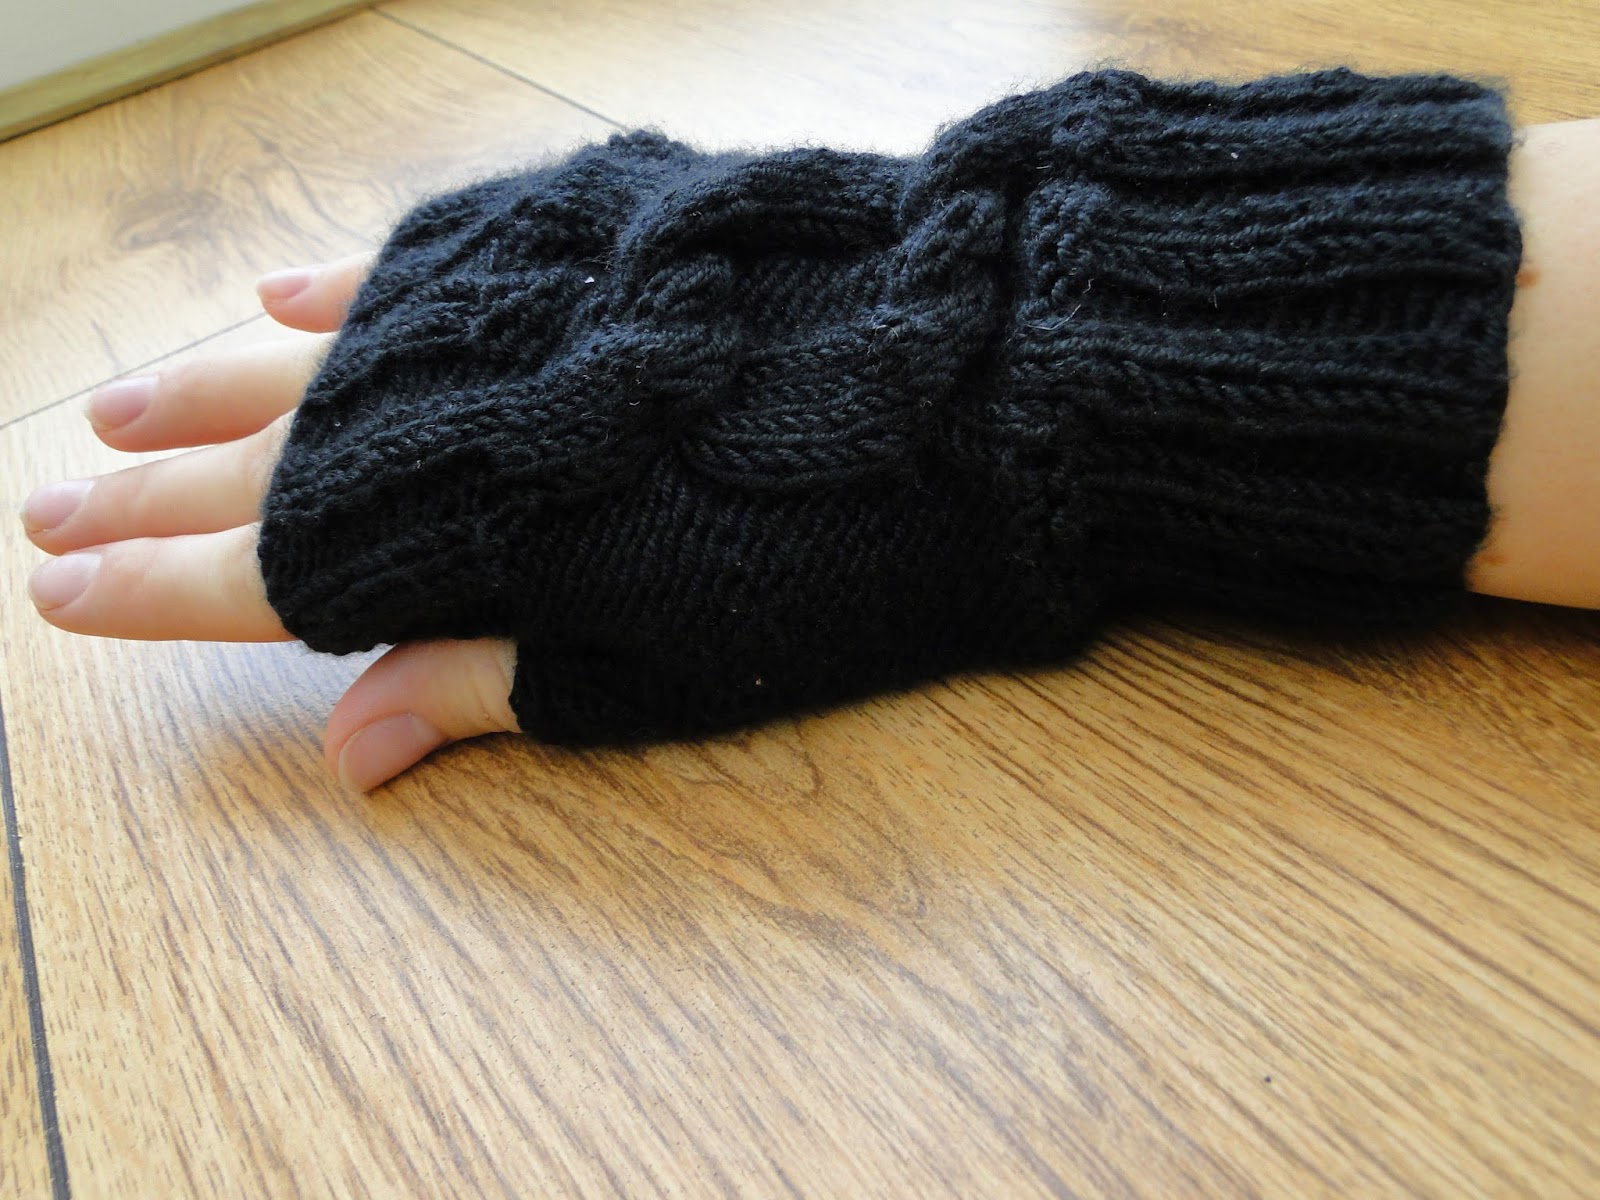 3 Rabbits Patterns: Fingerless Gloves Knitting Pattern